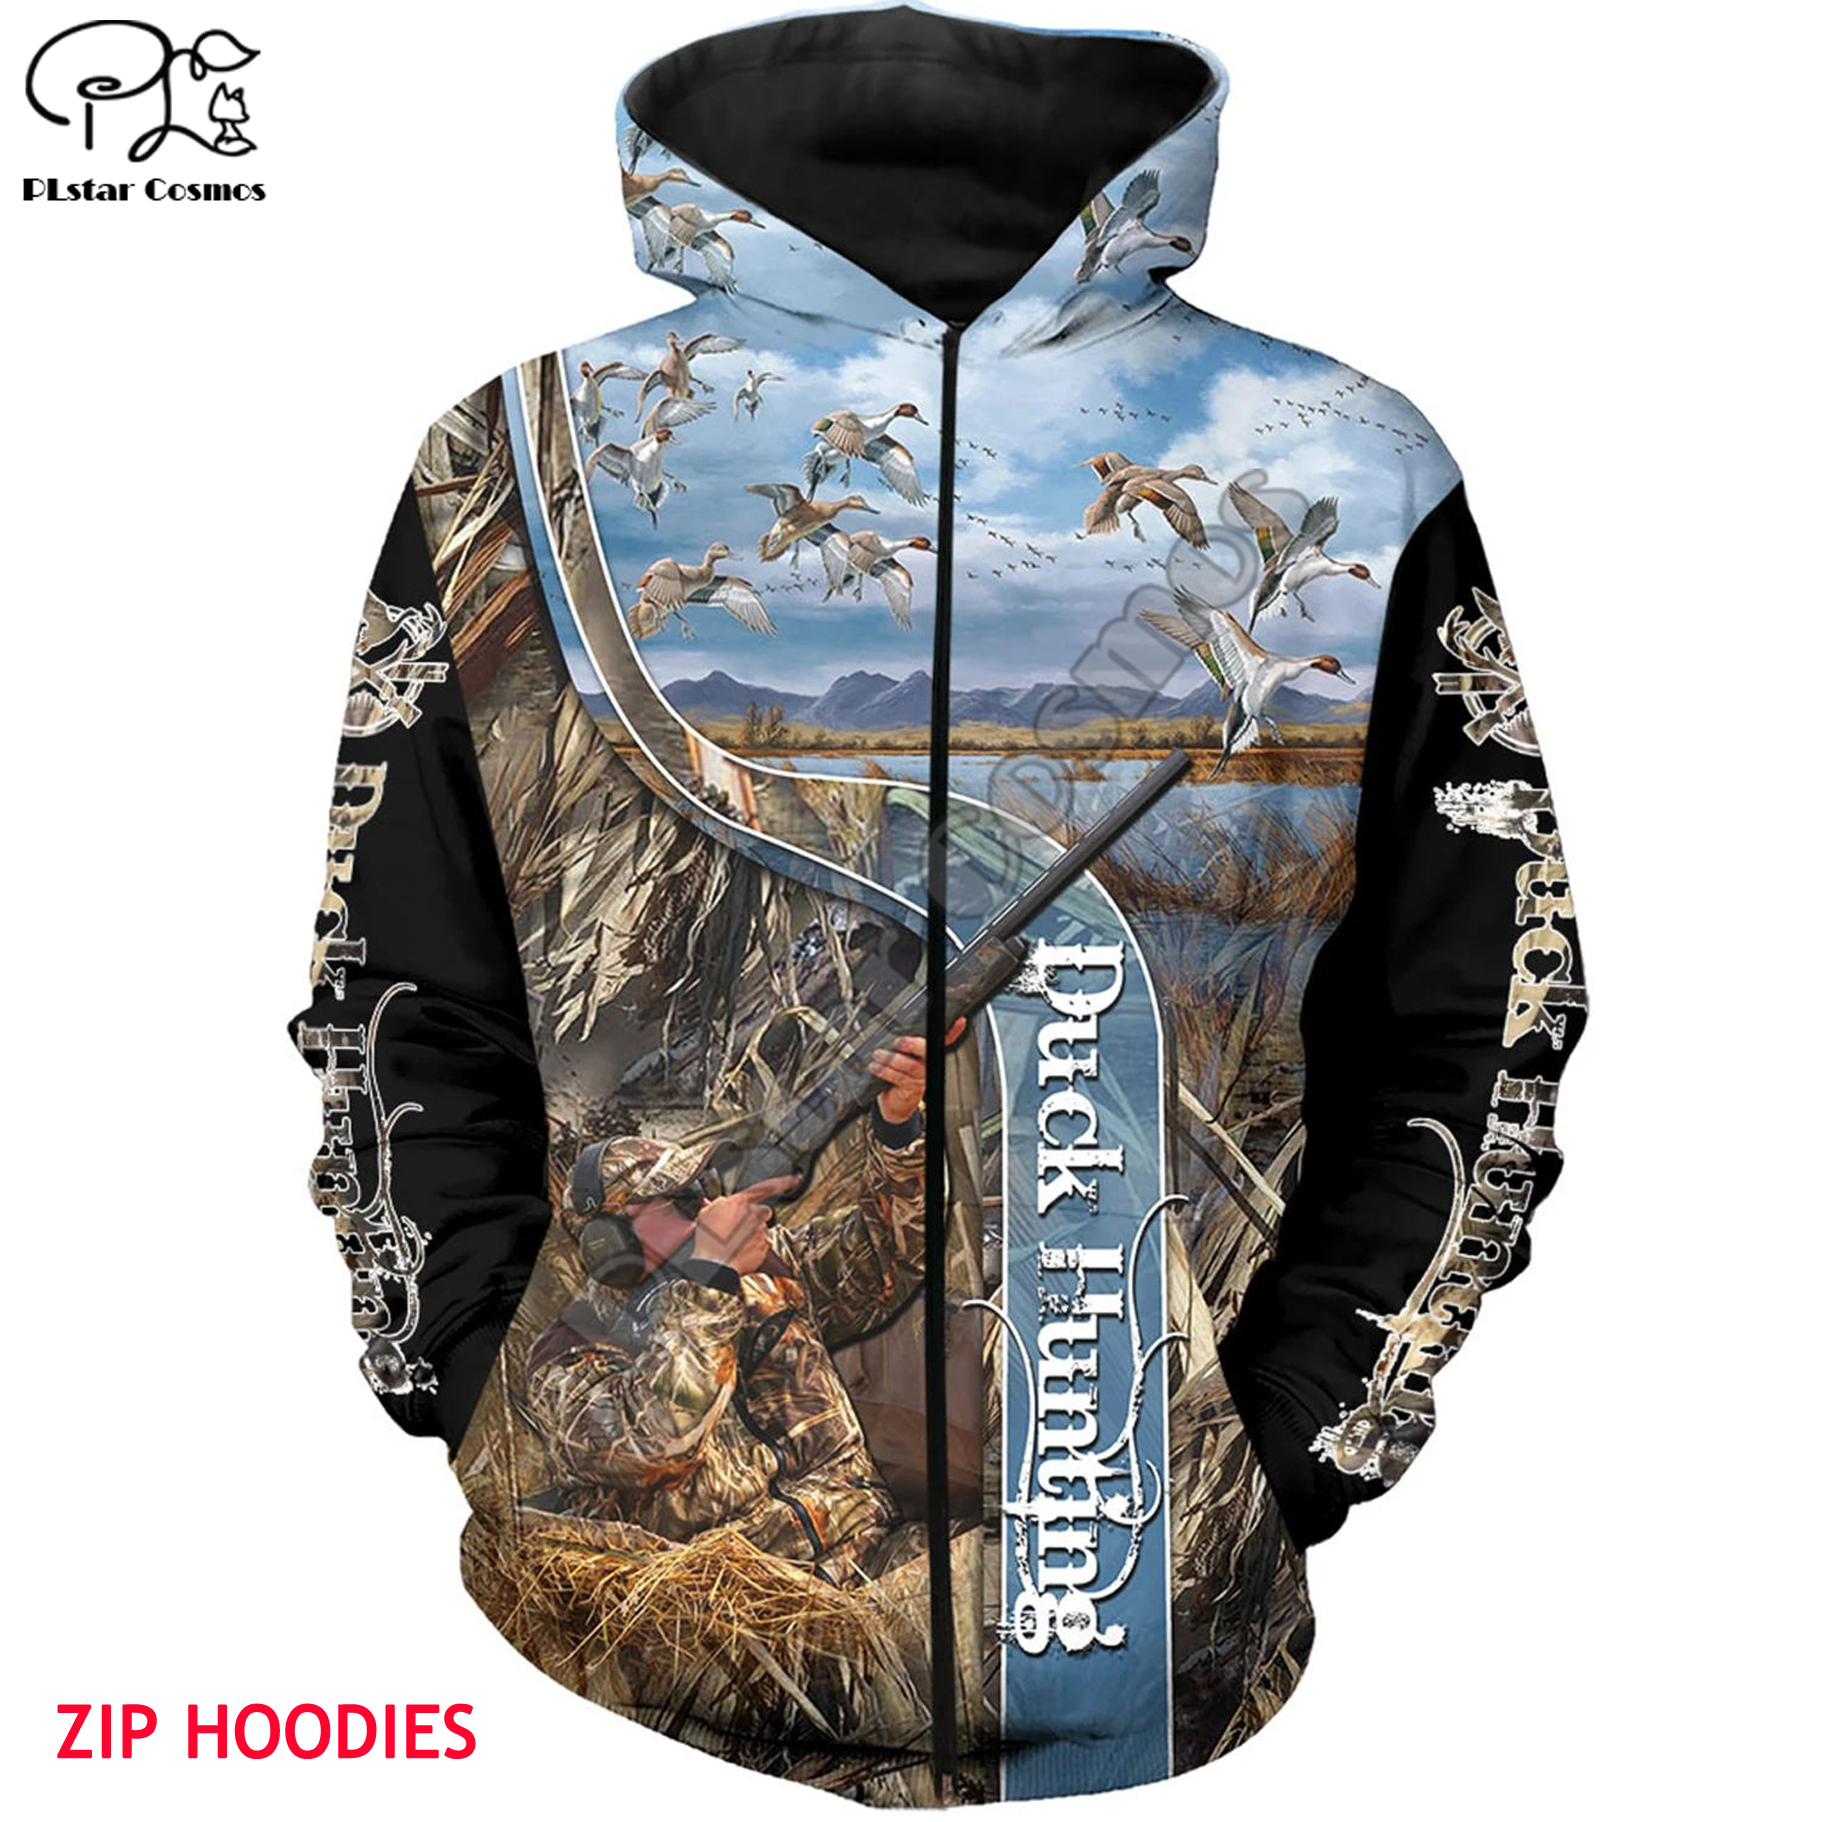 Duck Hunting 3d All Over Printed Unisex Hoodies Harajuku Fashion Casual Hooded Sweatshirt Zip Hoodies